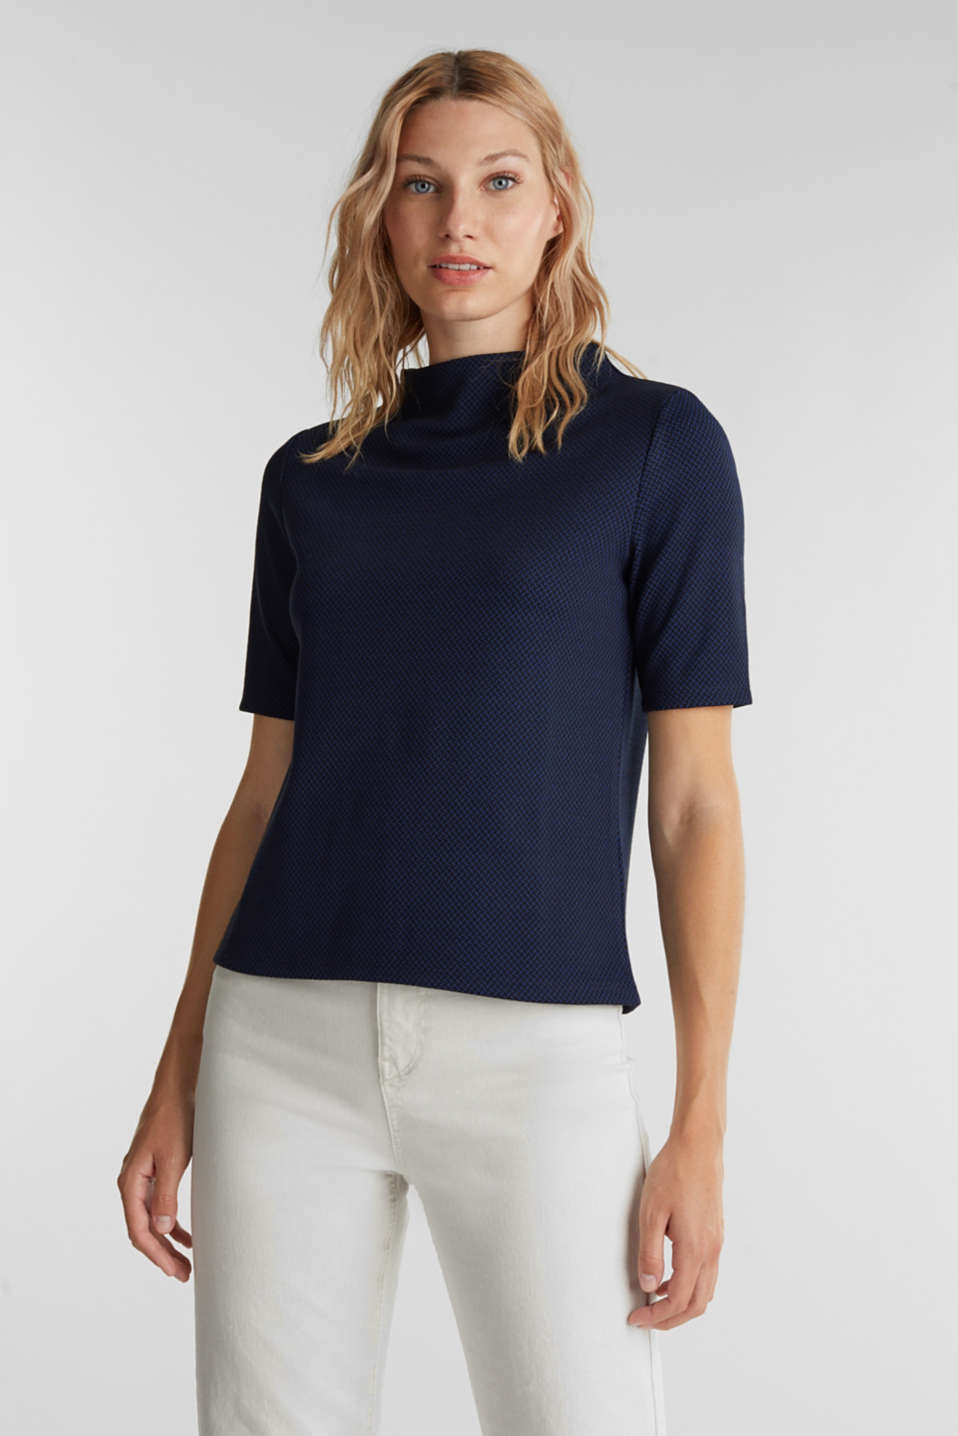 Esprit - Stretch top with a jacquard pattern